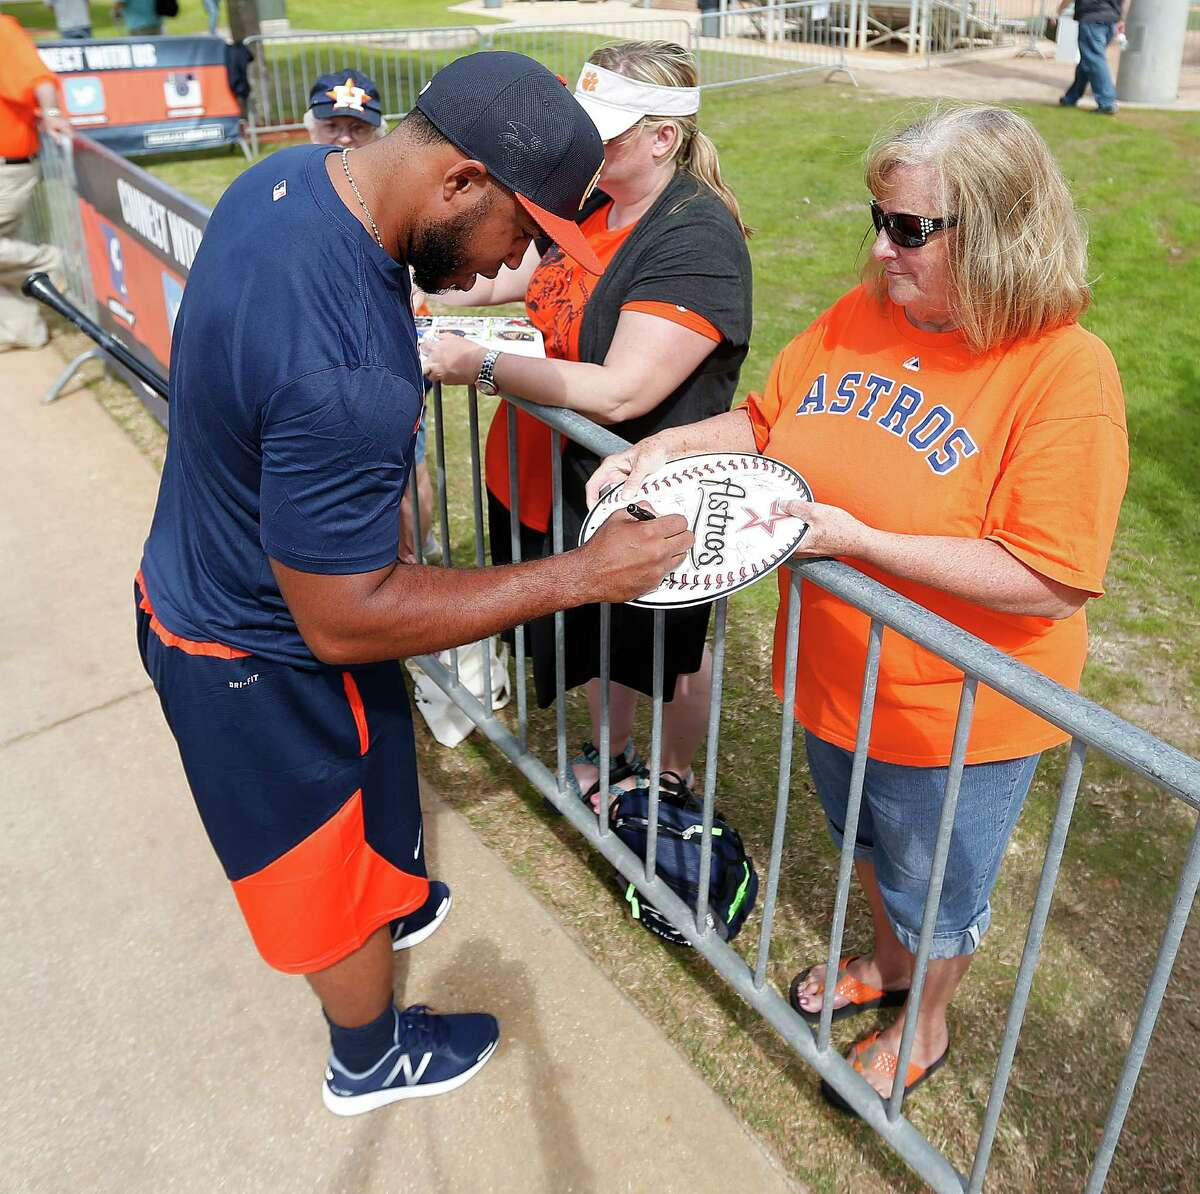 Houston Astros infielder Luis Valbuena signs an autograph for fan Carole Townsend as he walked back to the clubhouse after the batting cages during spring training in Kissimmee, Florida, Saturday, Feb. 20, 2016.